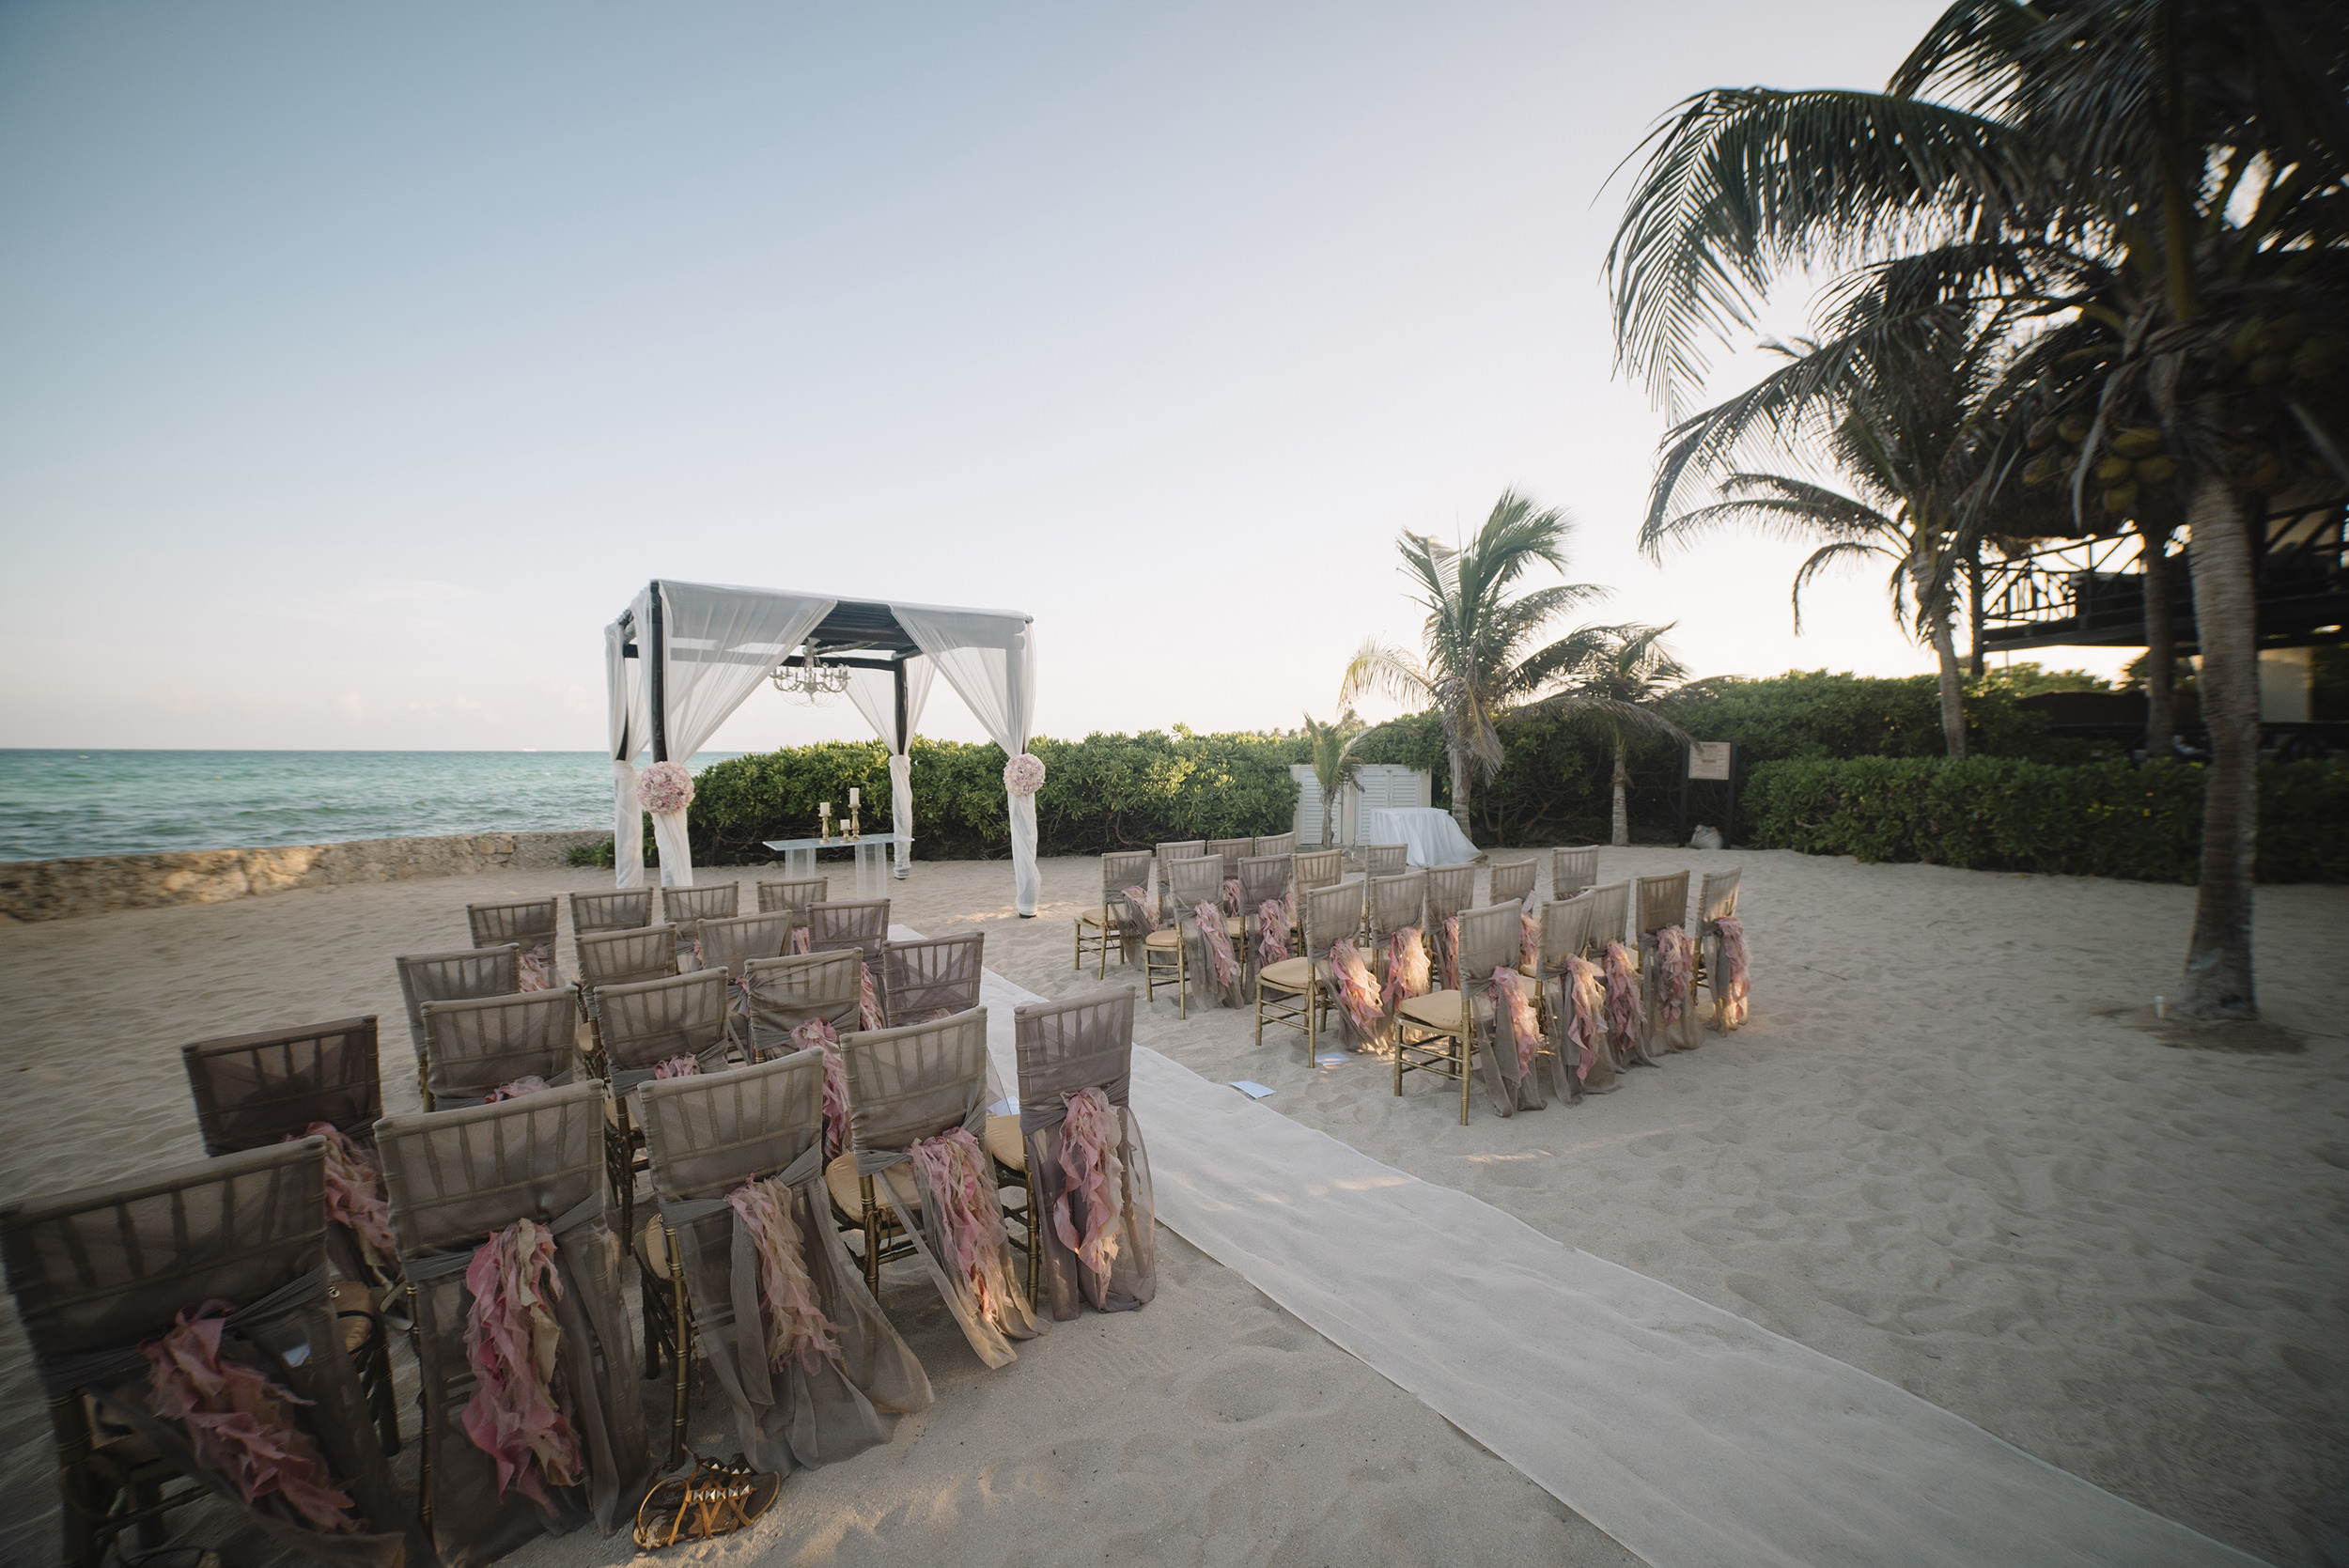 Colby-and-Jess-Intimate-Beach-Wedding-Destination-Cancun-Mexico60.jpg